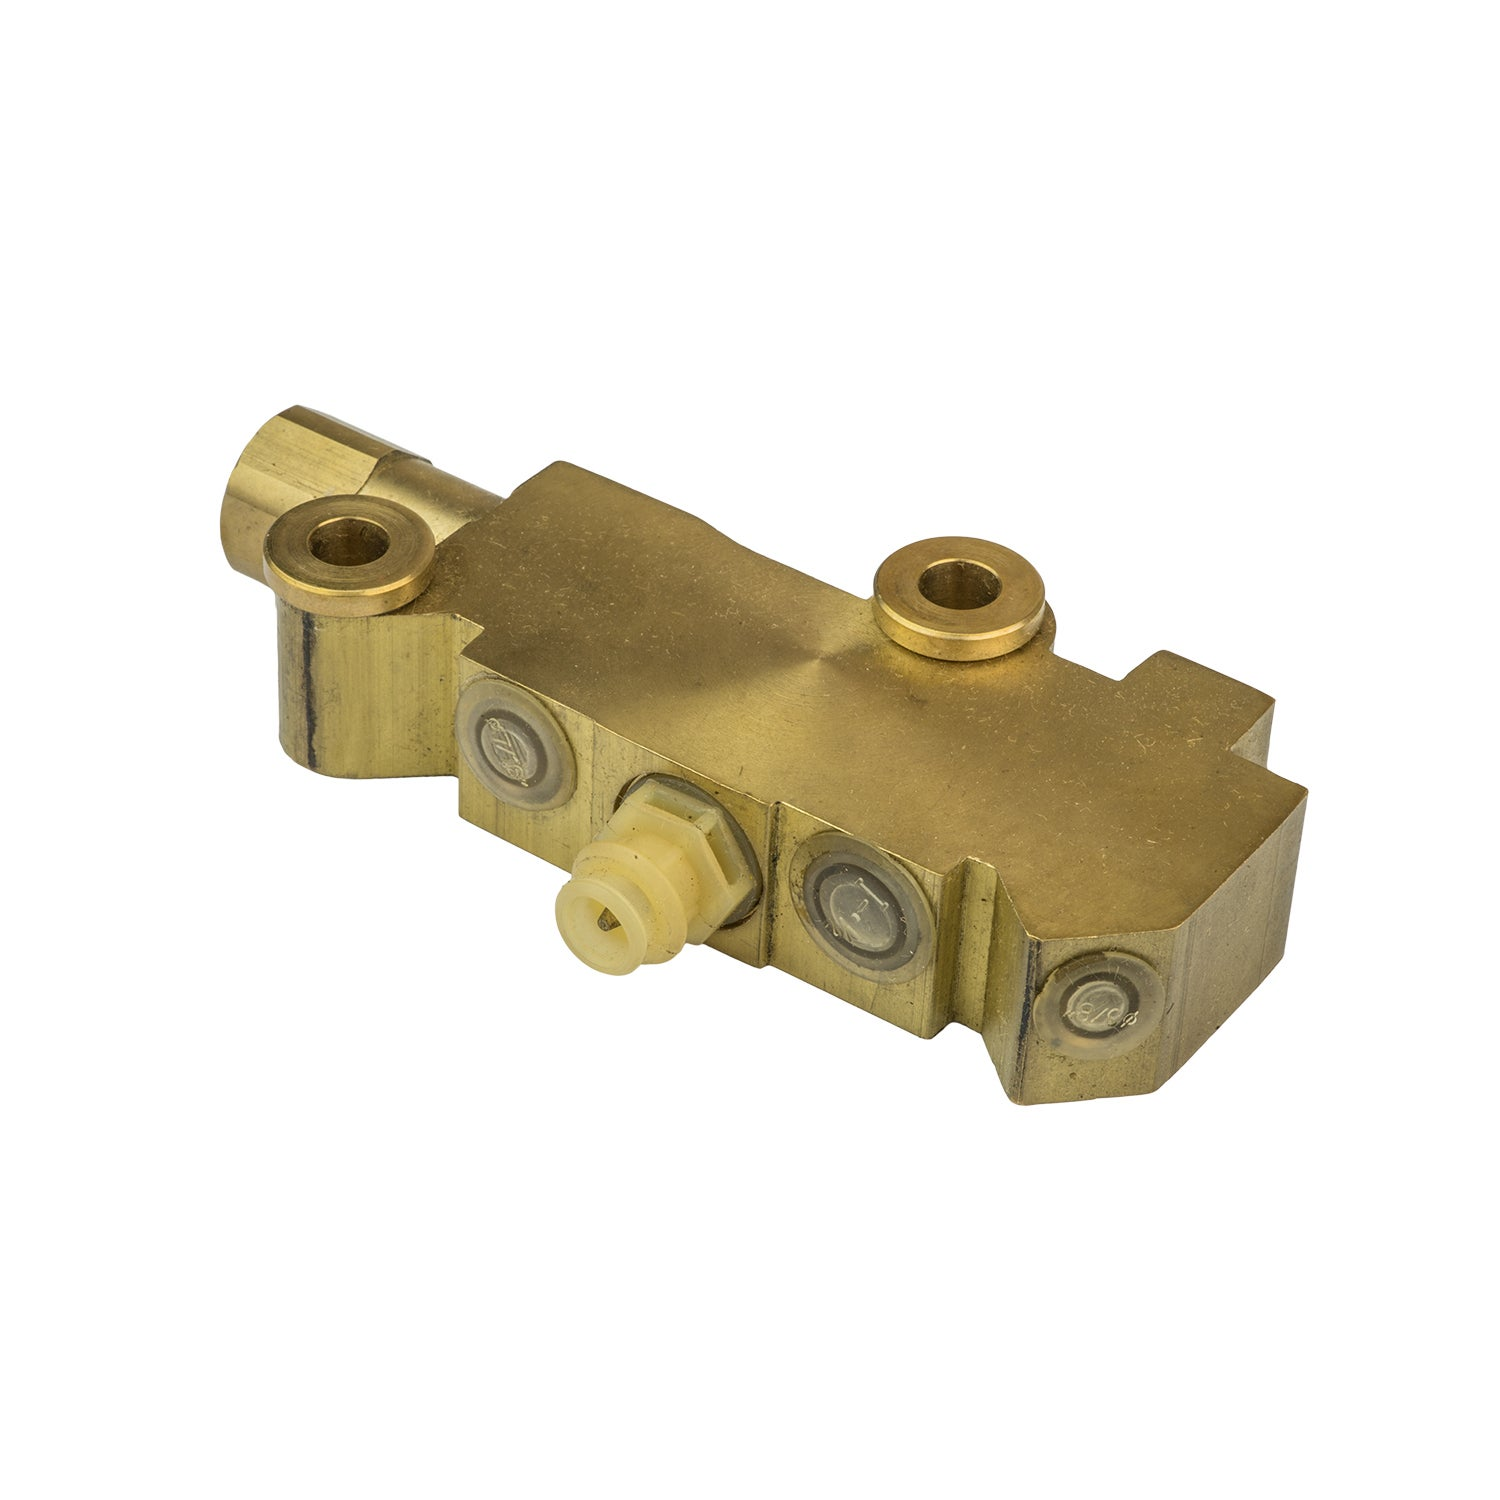 Proflow Brake Proportioning Valve Fixed Dual Inlet 3 Outlets Brass Front Disc/Drum Brakes